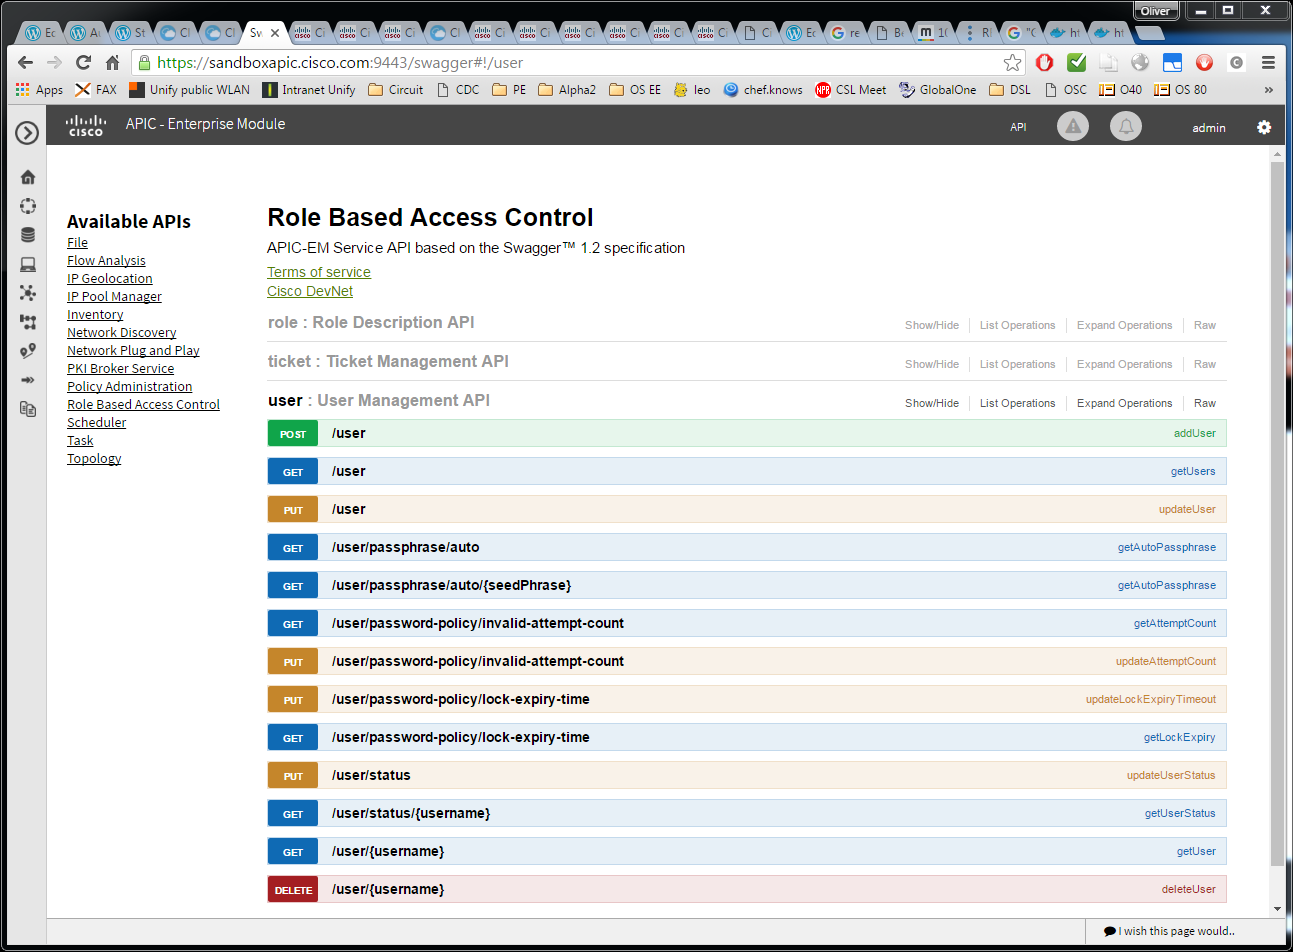 Automating Network Provisioning with Cisco APIC - Exploring the REST